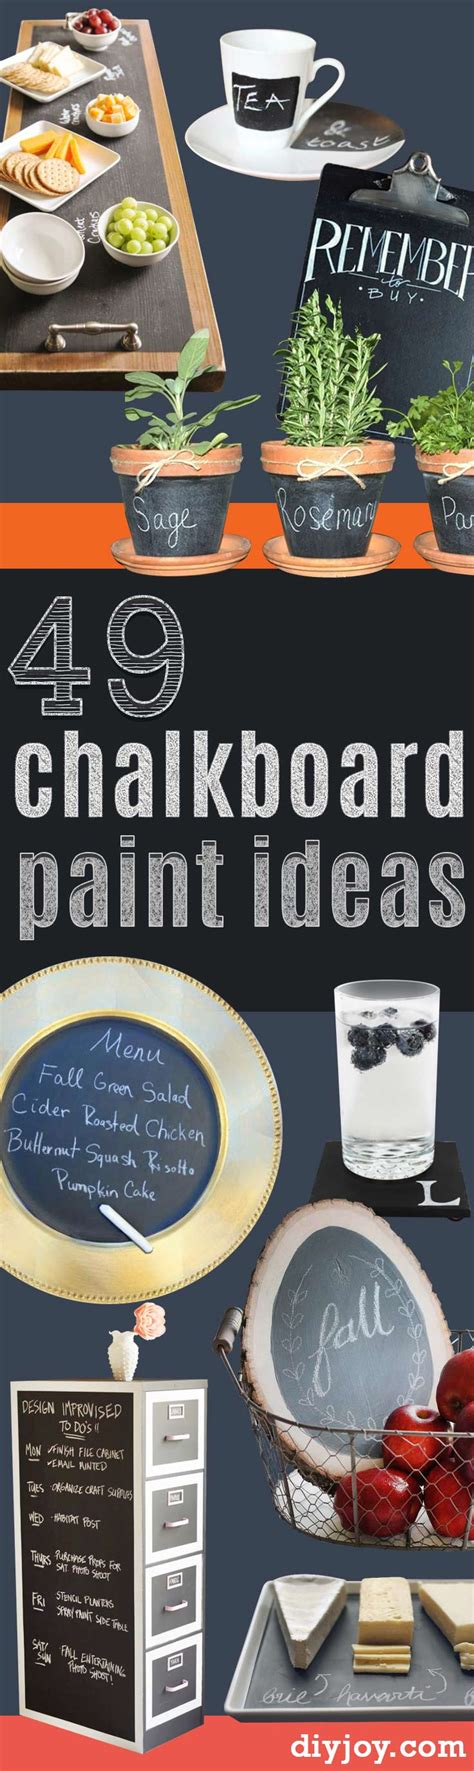 chalkboard paint bedroom ideas 52 diy chalkboard paint ideas for furniture and decor